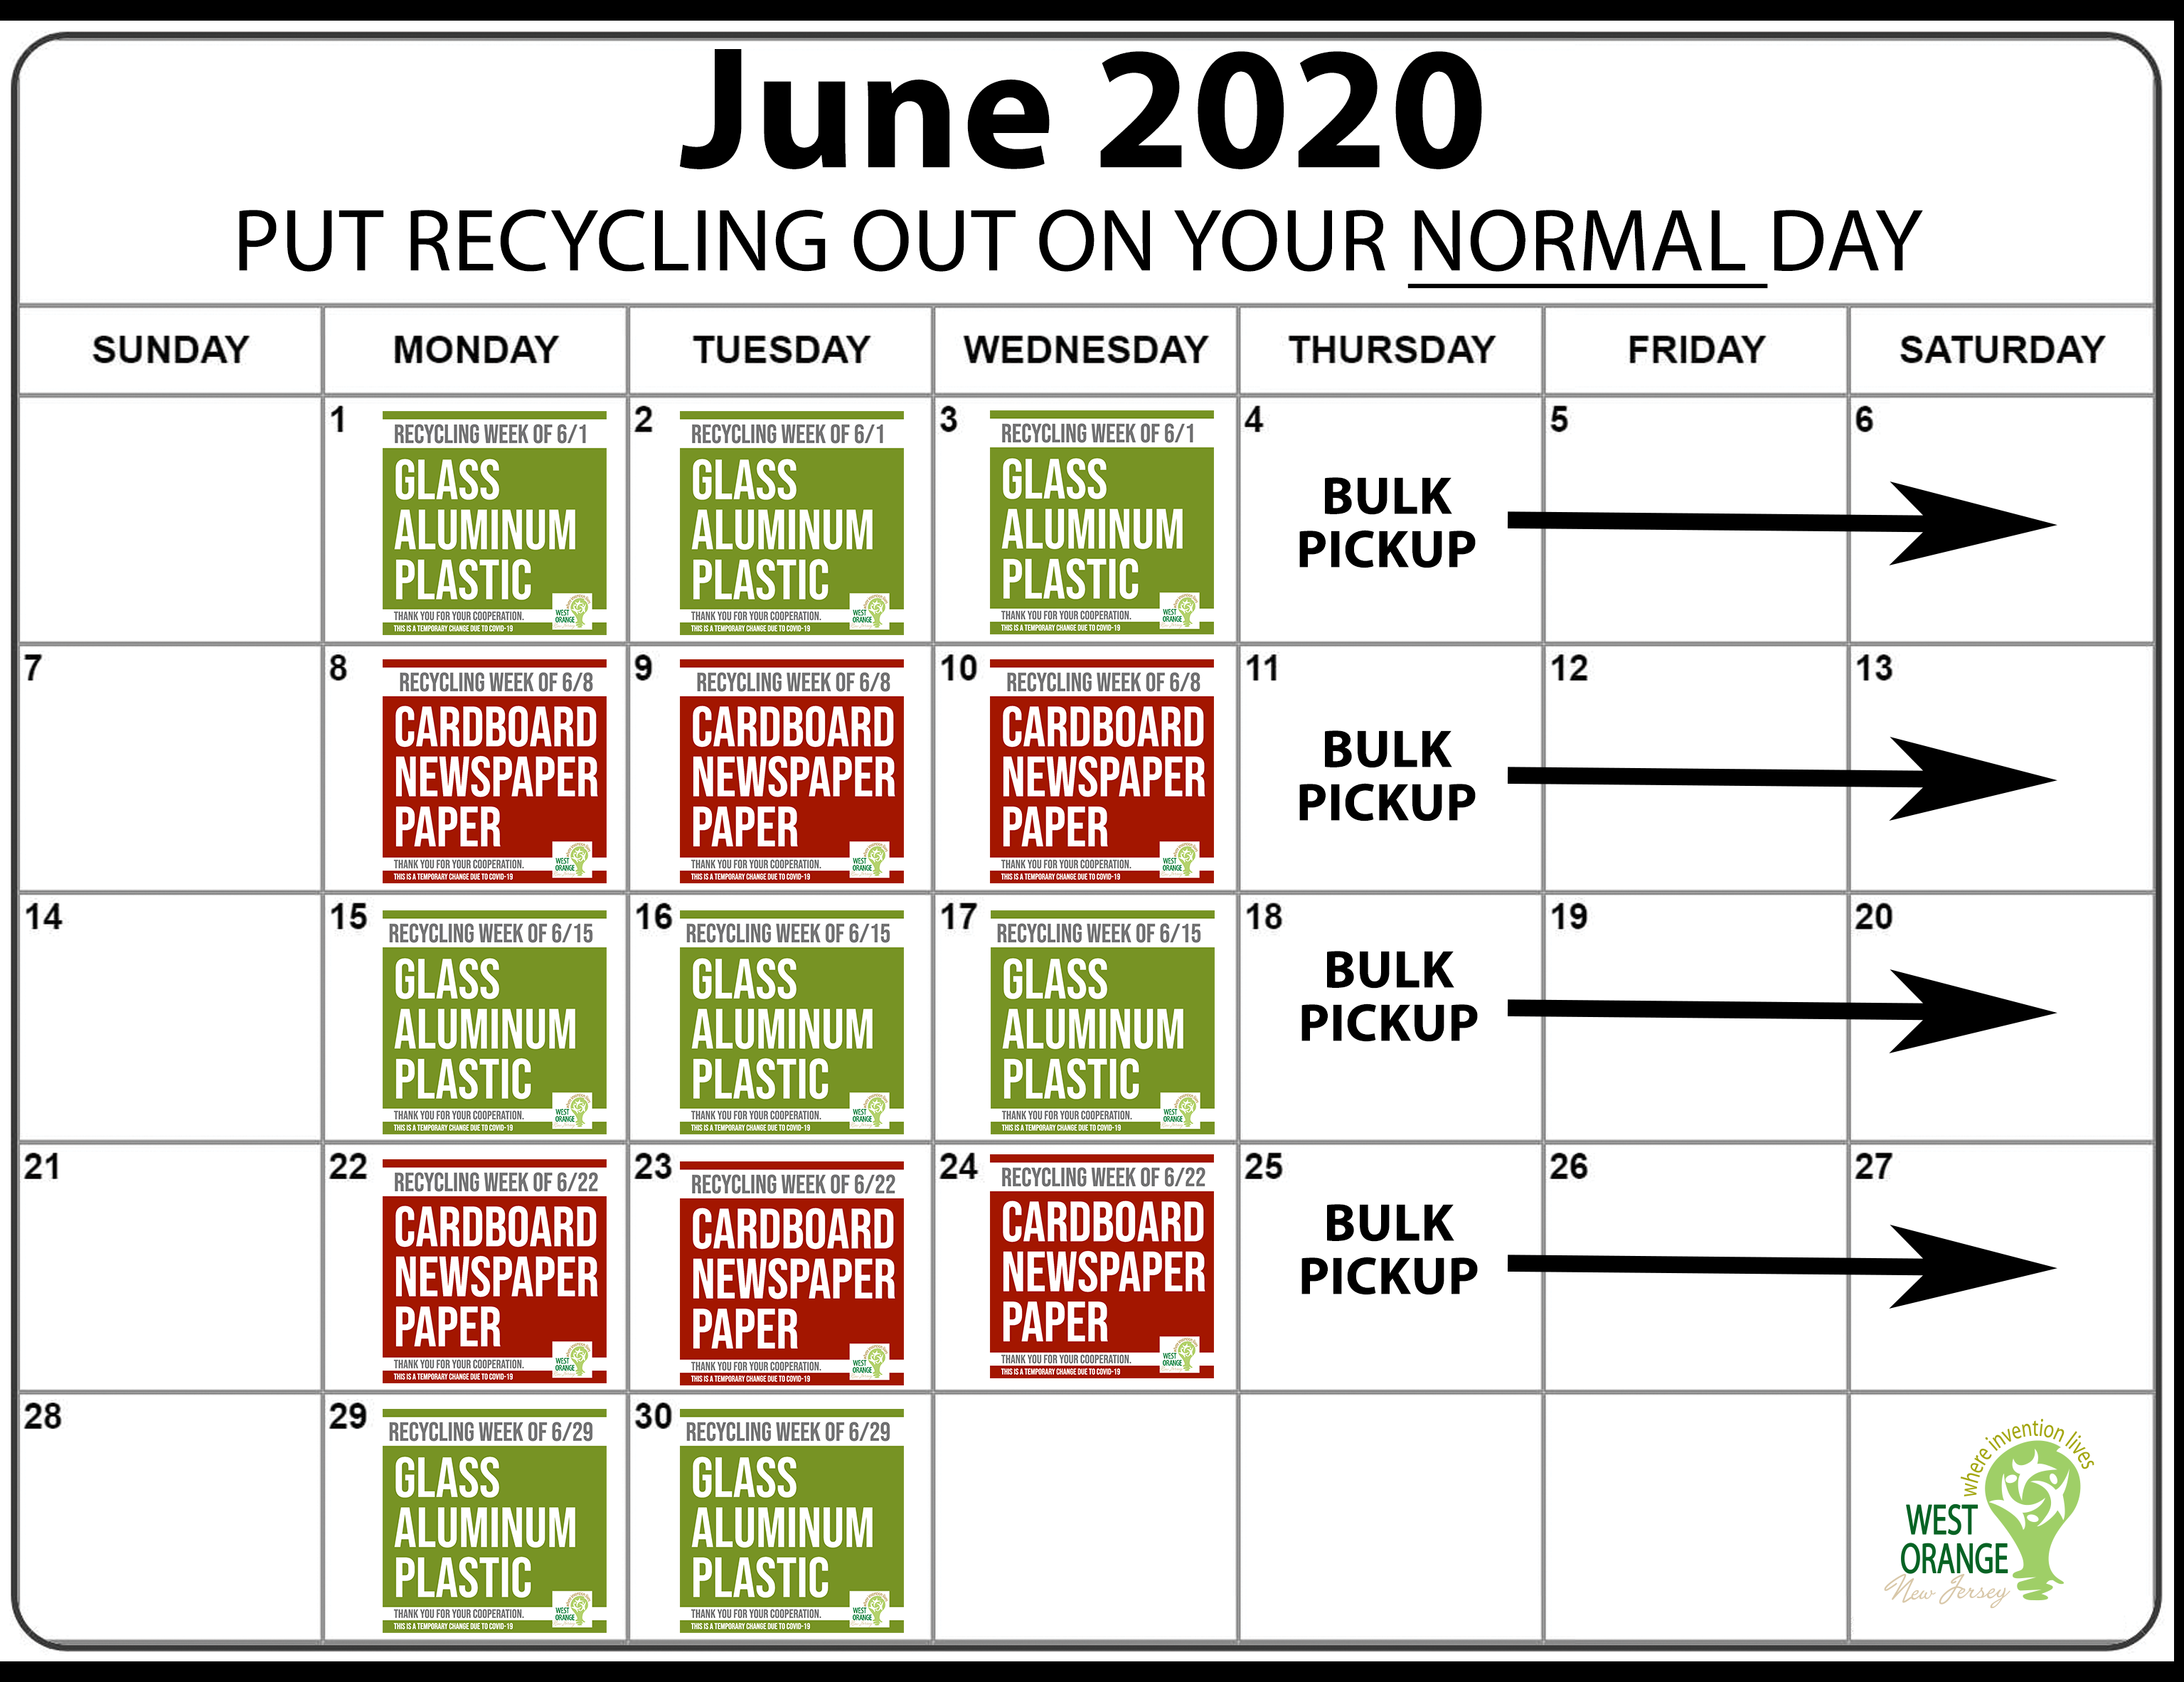 June 2020 WO Recycling